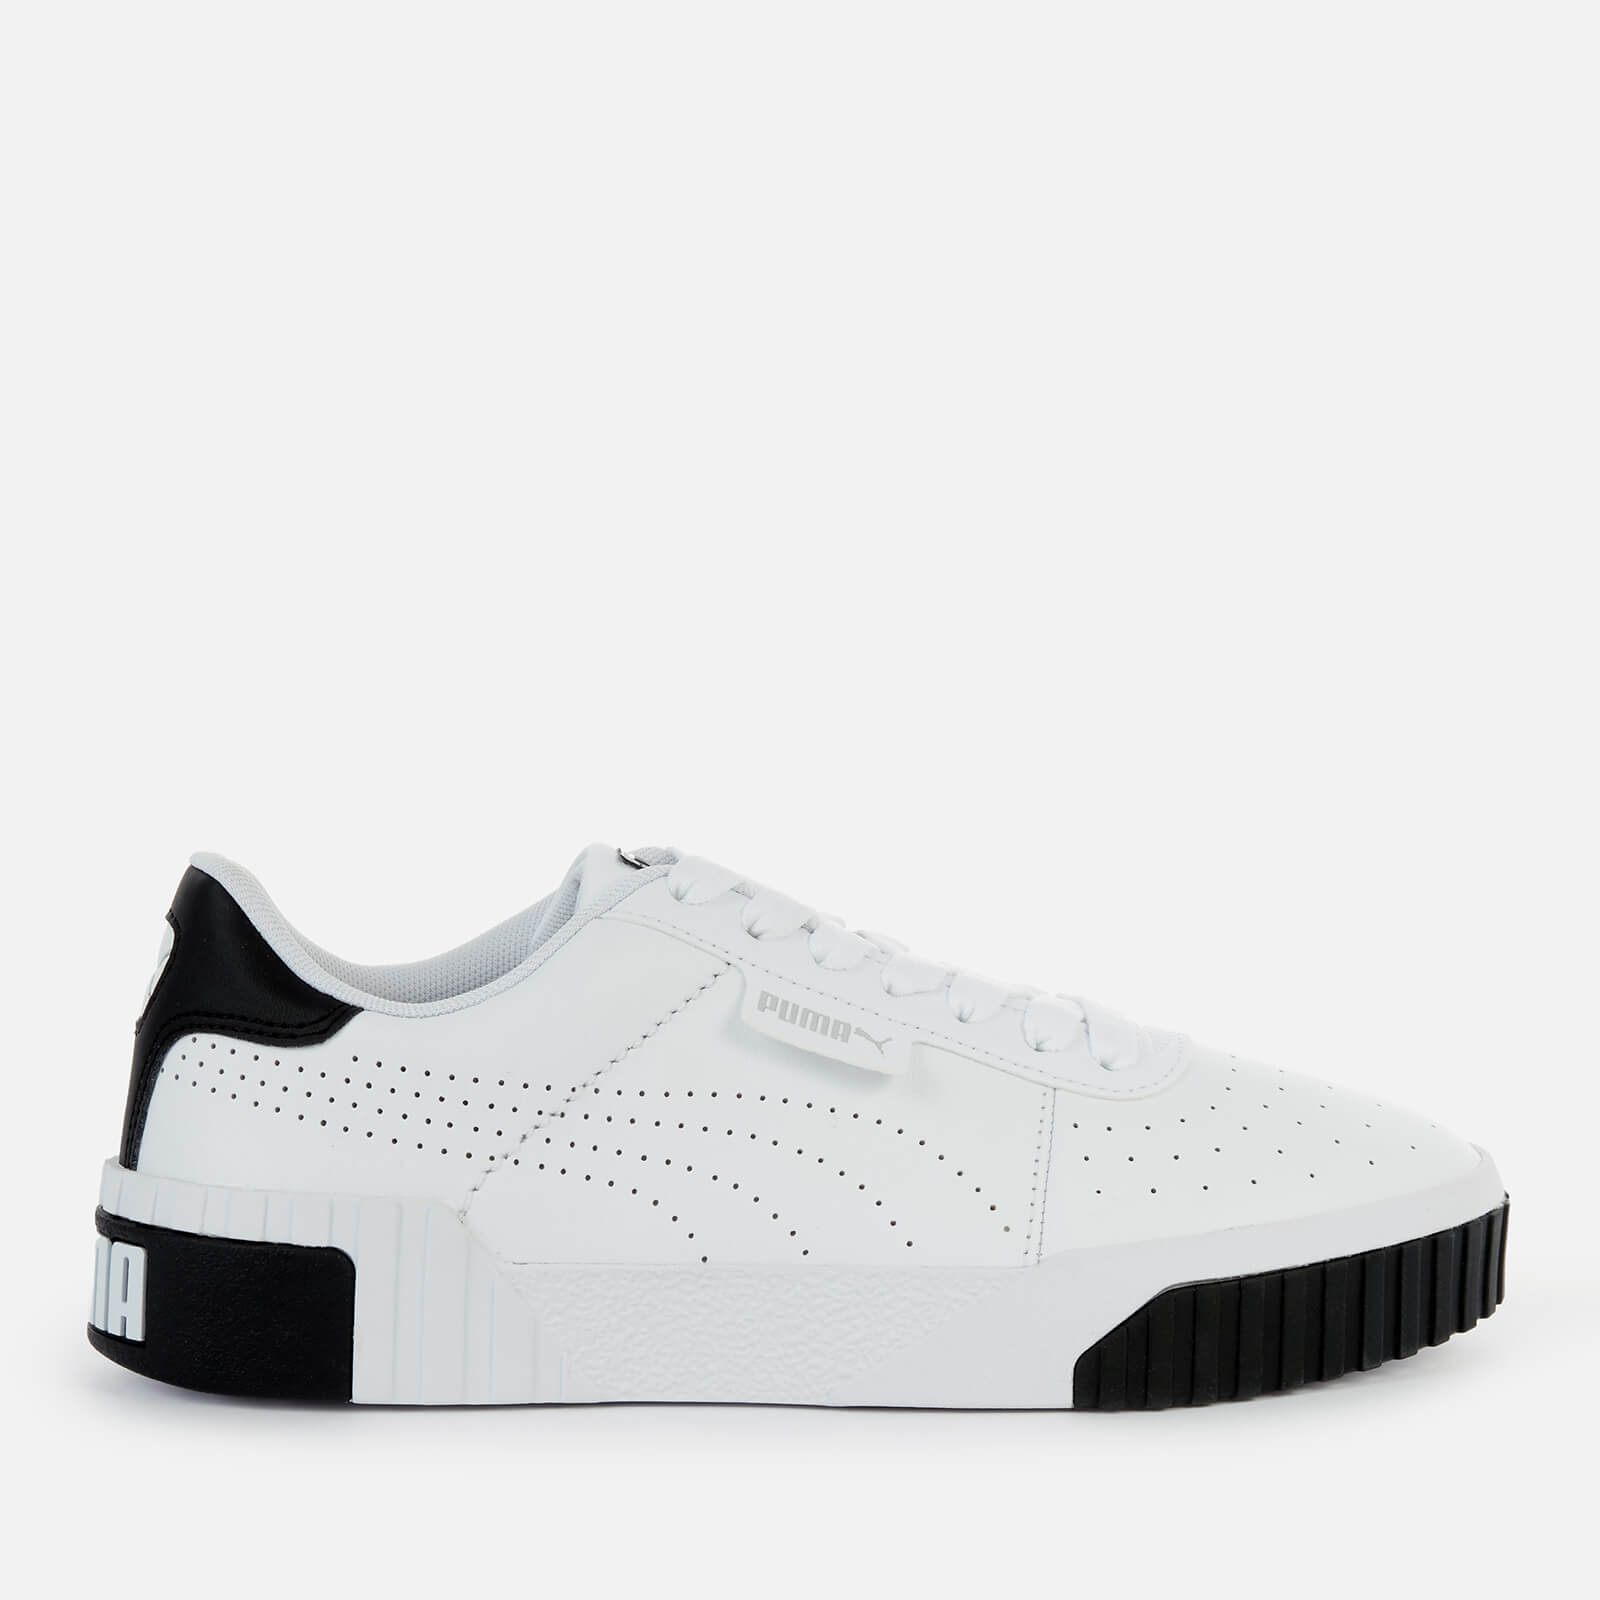 Click to view product details and reviews for Puma Womens Cali Perforated Leather Trainers Puma White Puma Black Puma Silver Uk 3.